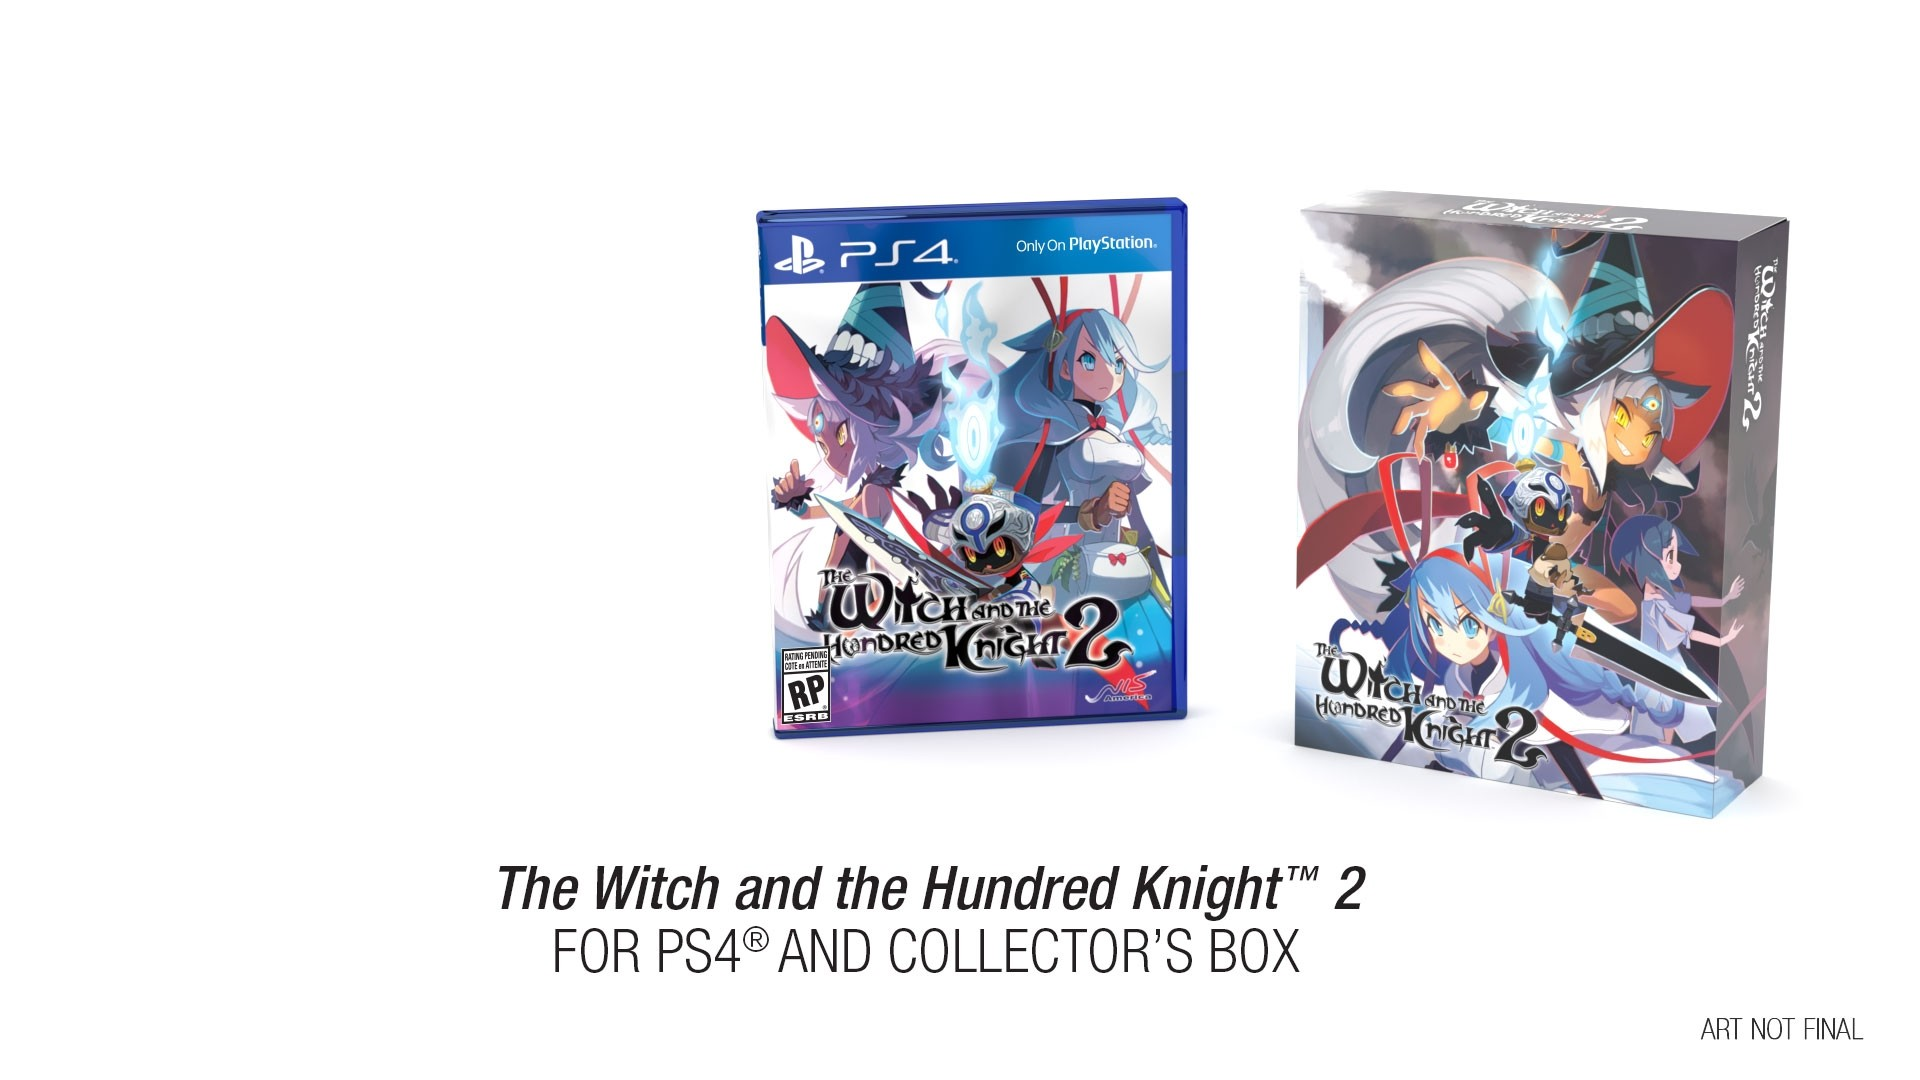 The Witch and the Hundred Knight 2 k nám dorazí příští rok 151332